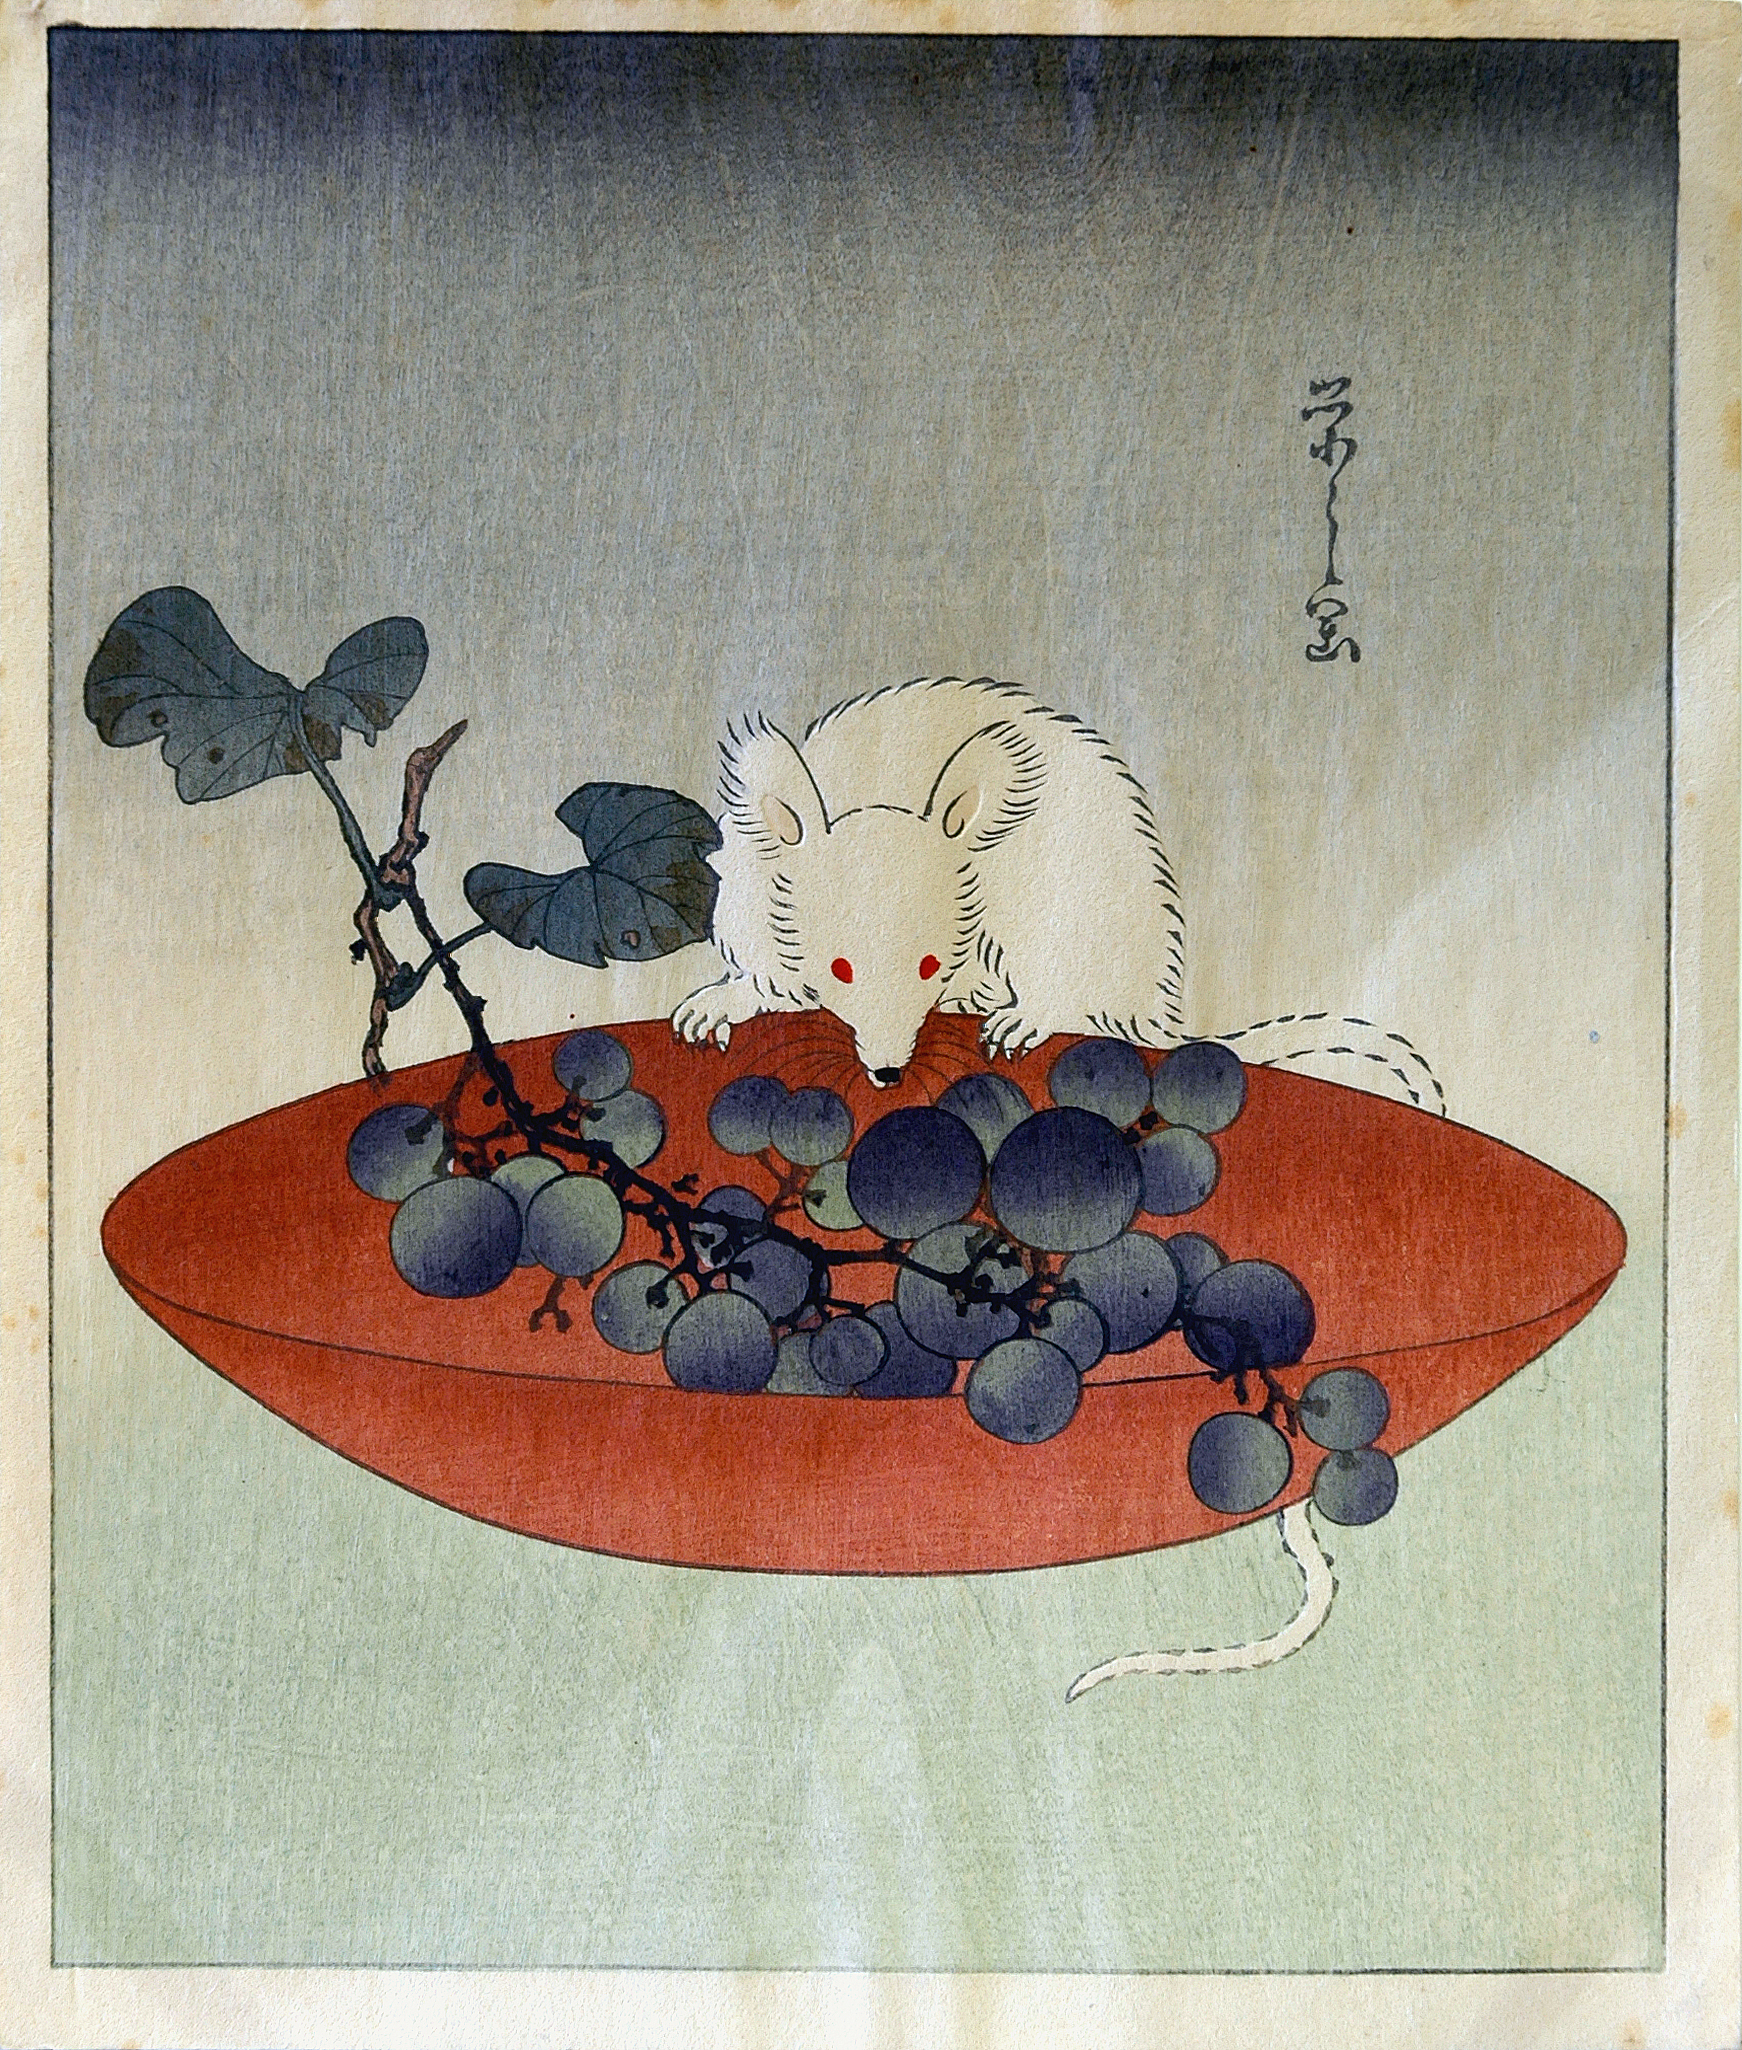 Mouse eating berries